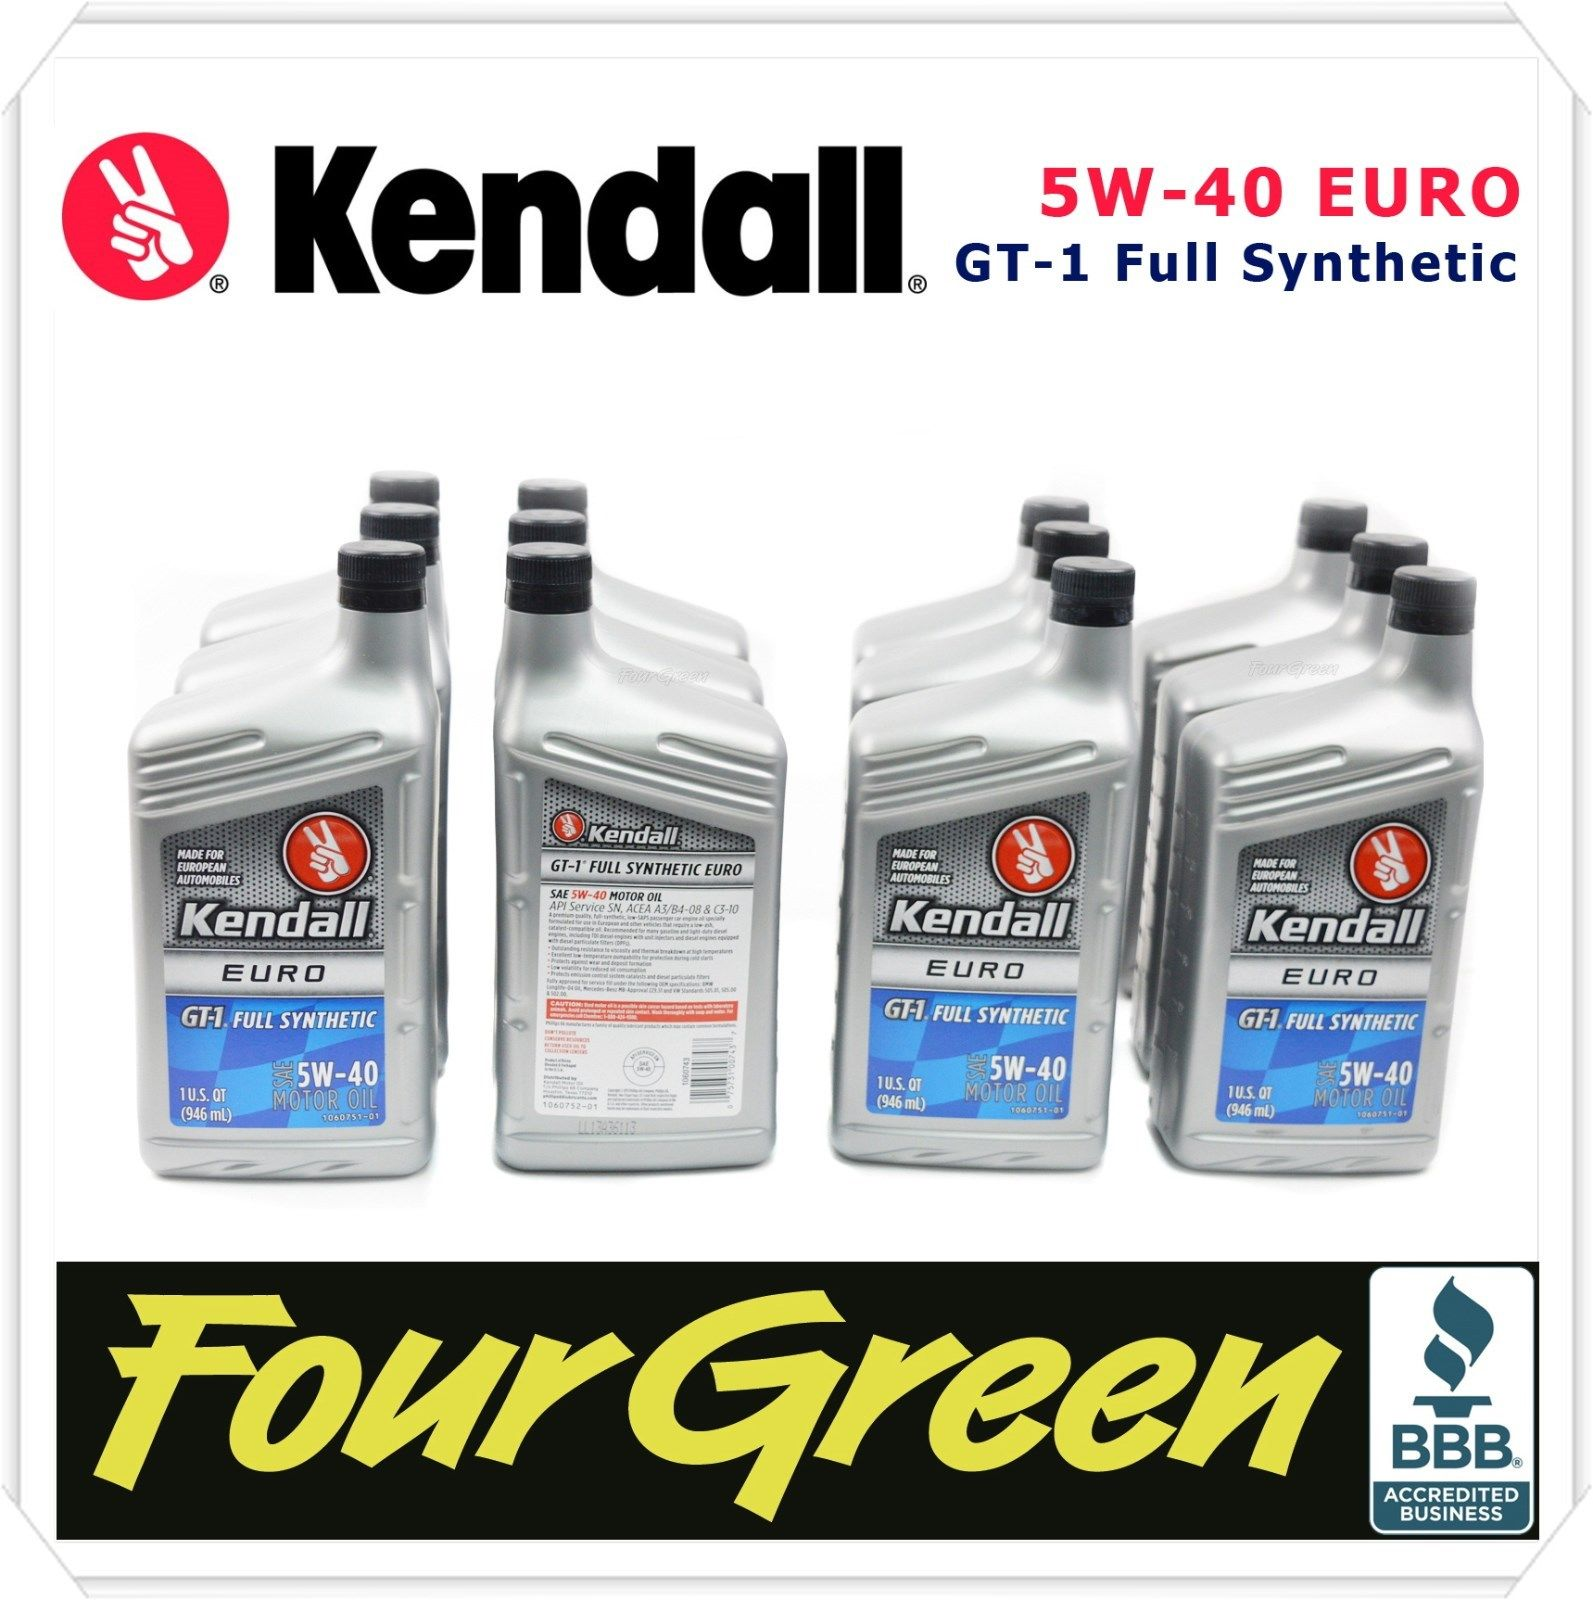 Kendall Engine Motor Oil 5w40 GT1 Fully Synthetic Euro Liquid Titanium12 qrts